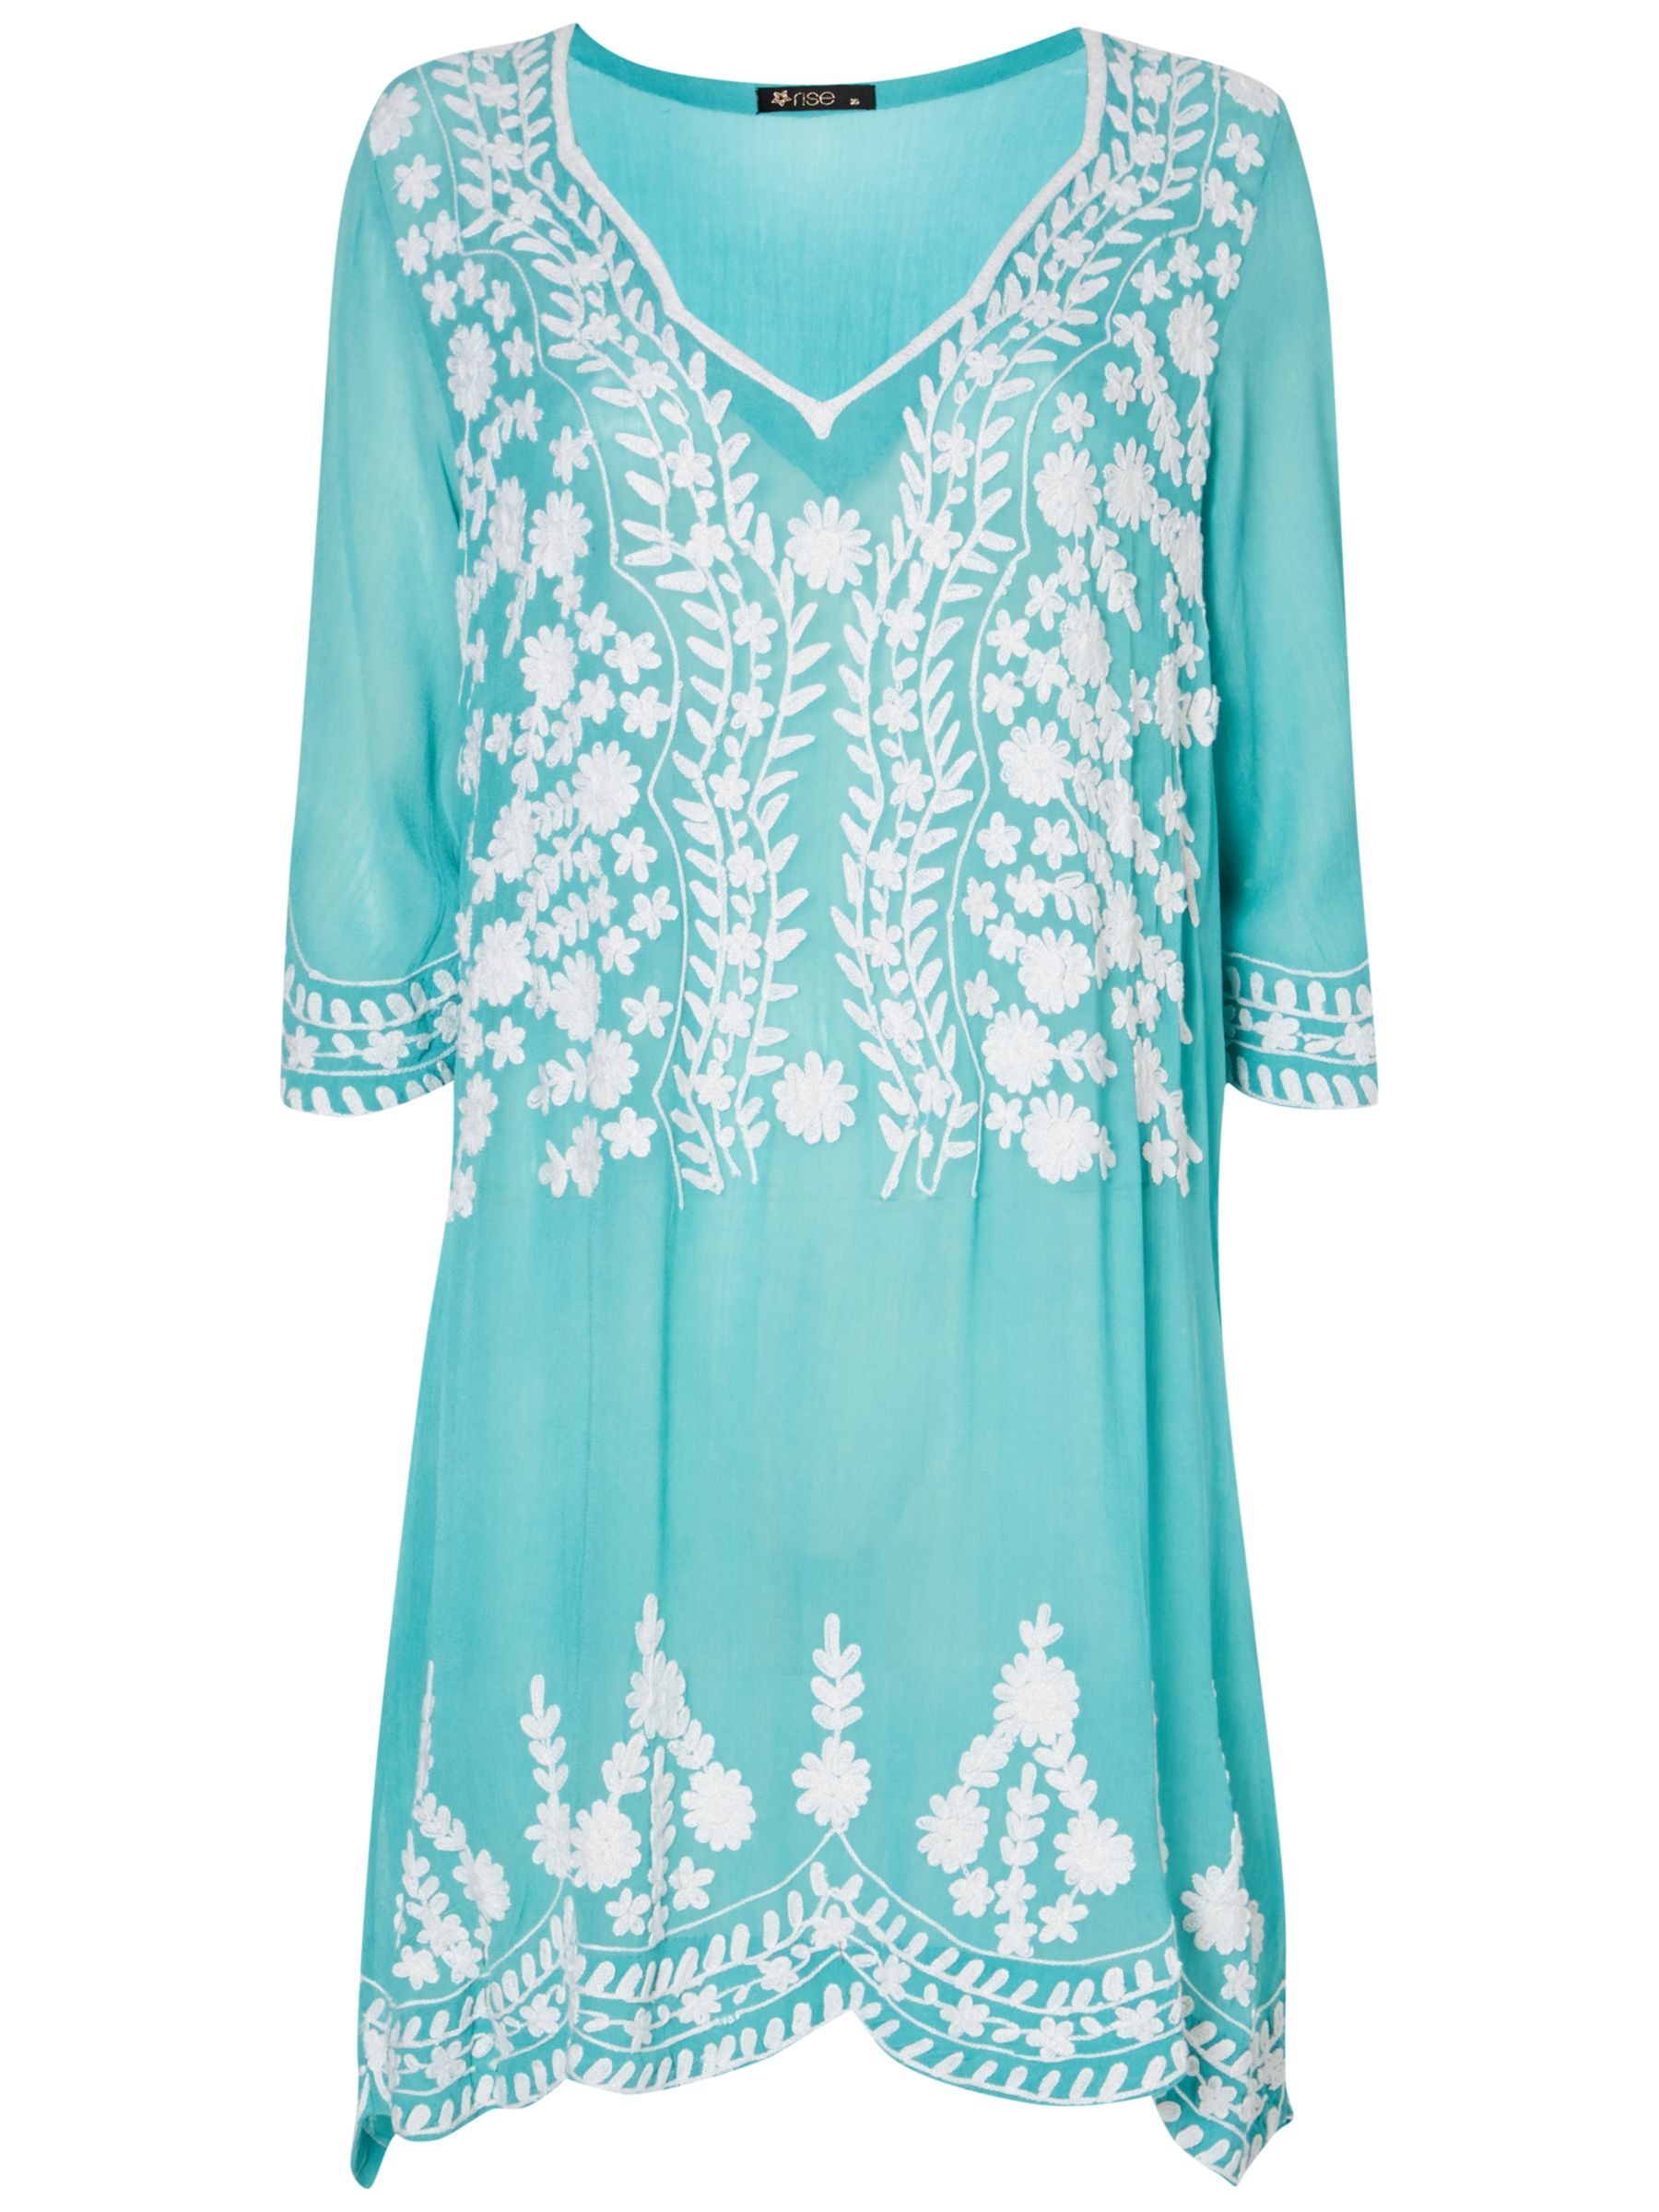 rise aryan dress, rise, aryan, dress, green, clearance, womenswear offers, womens dresses offers, women, womens dresses, special offers, inactive womenswear, aw14 trends, touch-me texture, 1645445